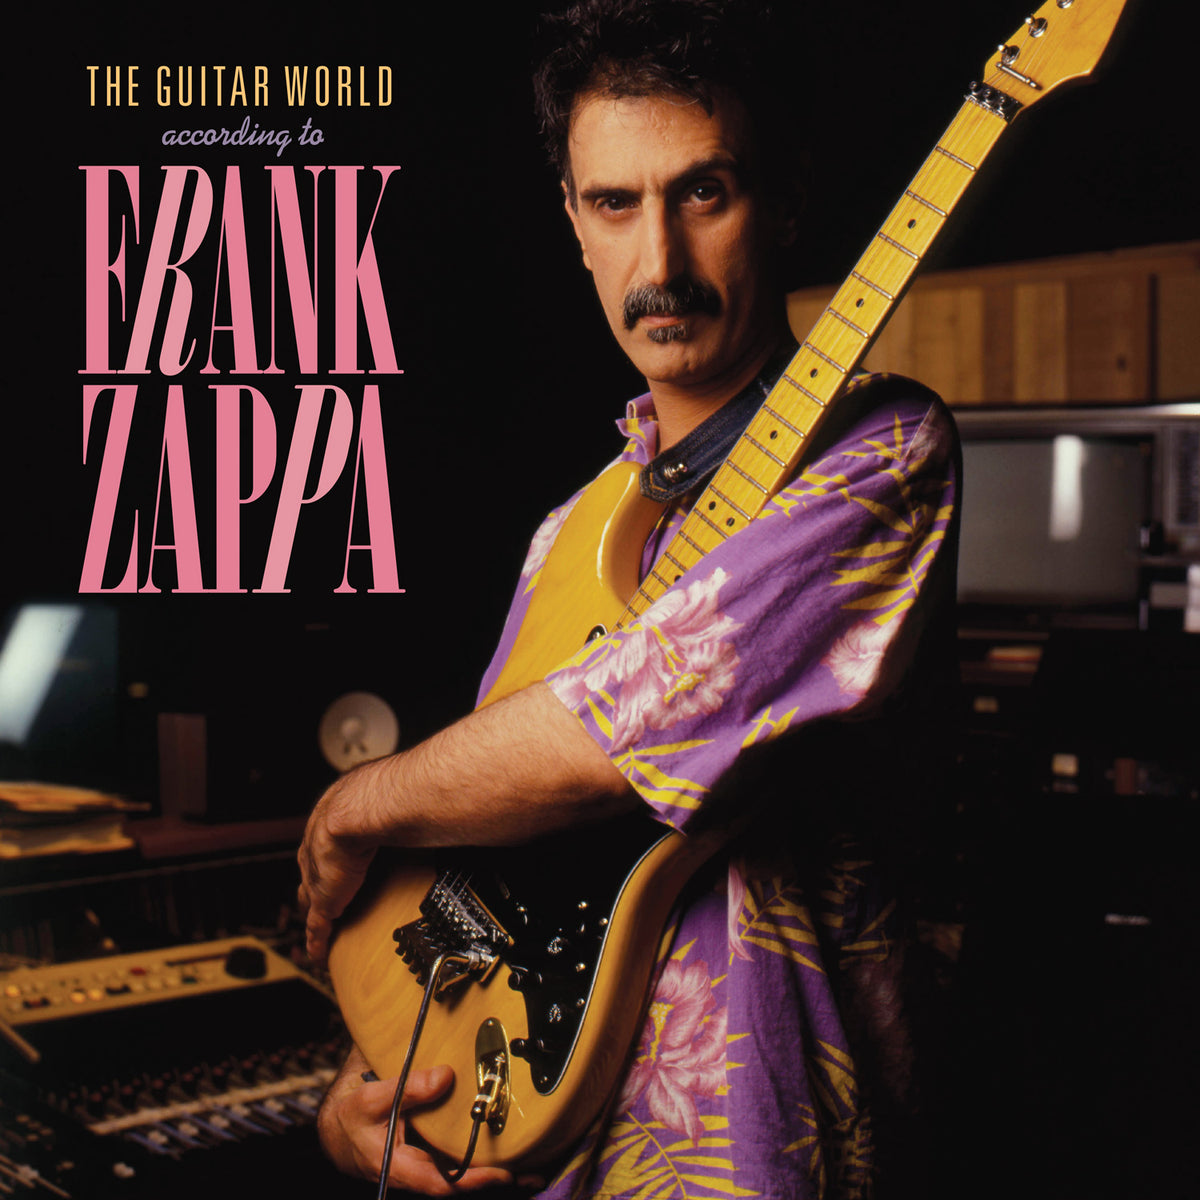 Frank Zappa: The Guitar World According To Frank Zappa (Colored Vinyl) Vinyl LP (Record Store Day)